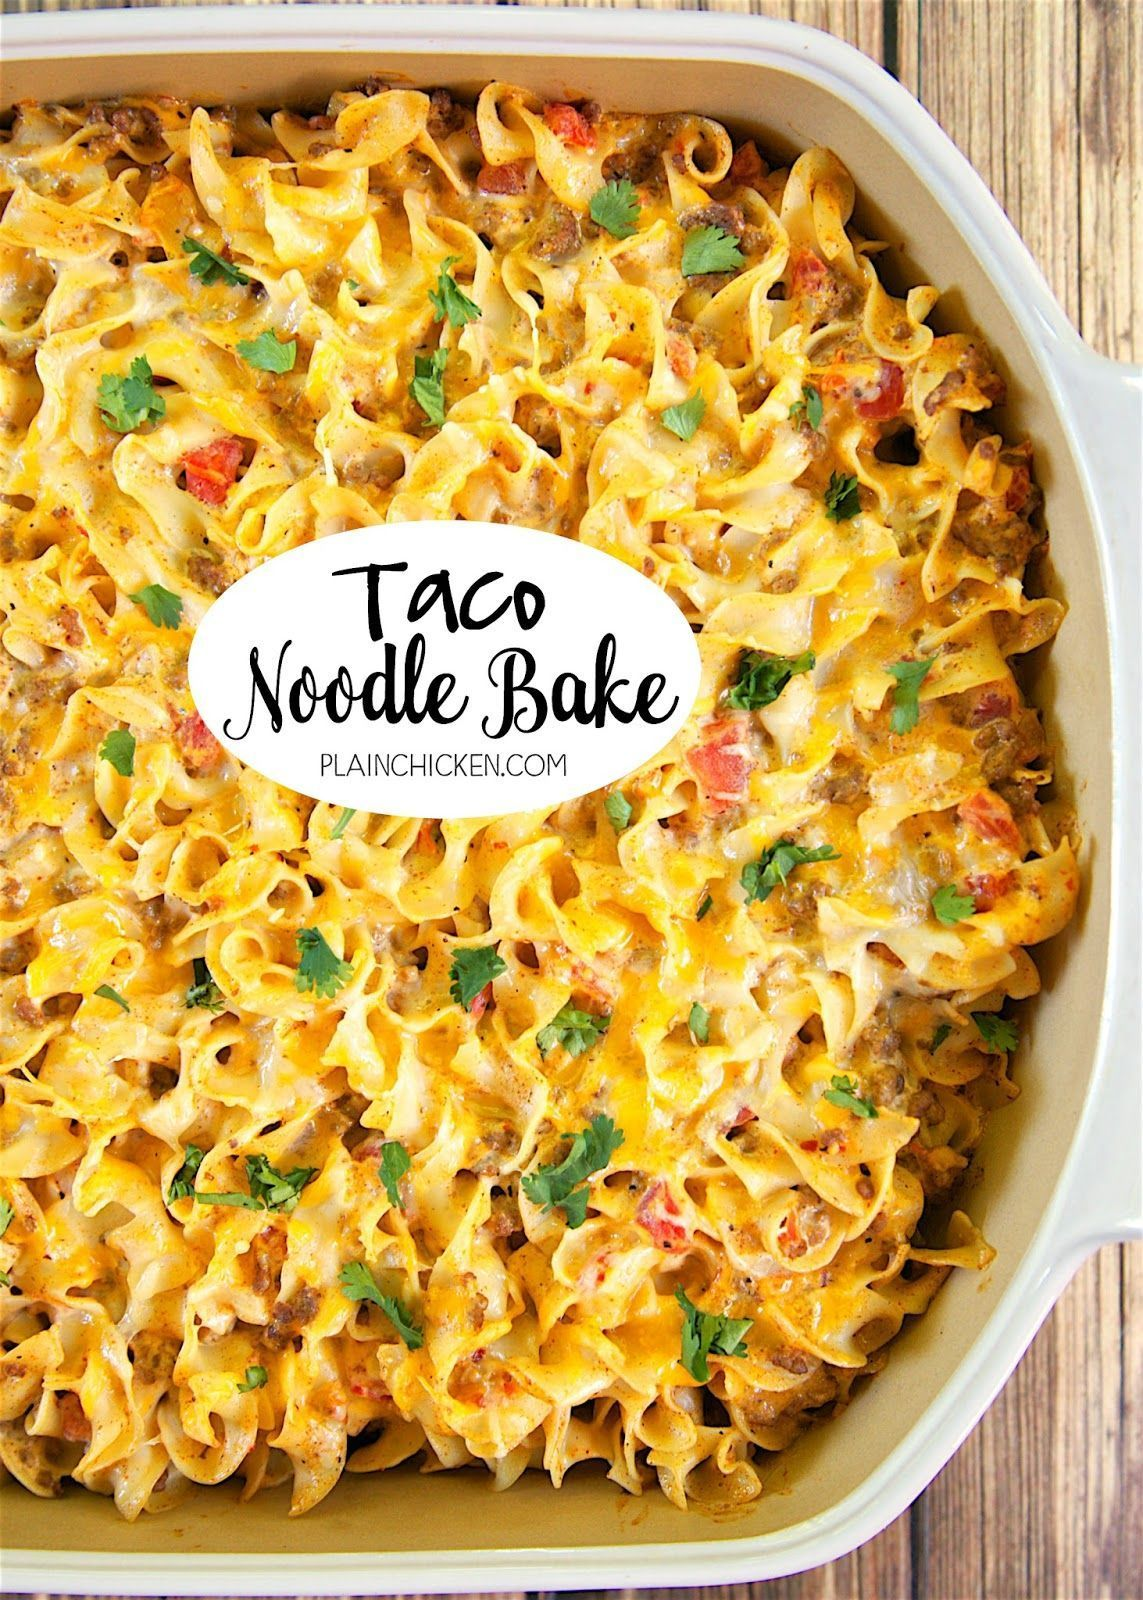 Taco Noodle Bake - SO good!!! Egg noodles, taco meat, cheese, diced tomatoes and green chiles, cheddar cheese soup and sour cream. Everyone cleaned their plate and asked for seconds! Makes a great freezer meal too!! LOVE this easy Mexican casserole!!! #sourcreamnoodlebake Taco Noodle Bake - SO good!!! Egg noodles, taco meat, cheese, diced tomatoes and green chiles, cheddar cheese soup and sour cream. Everyone cleaned their plate and asked for seconds! Makes a great freezer meal too!! LOVE this e #sourcreamnoodlebake